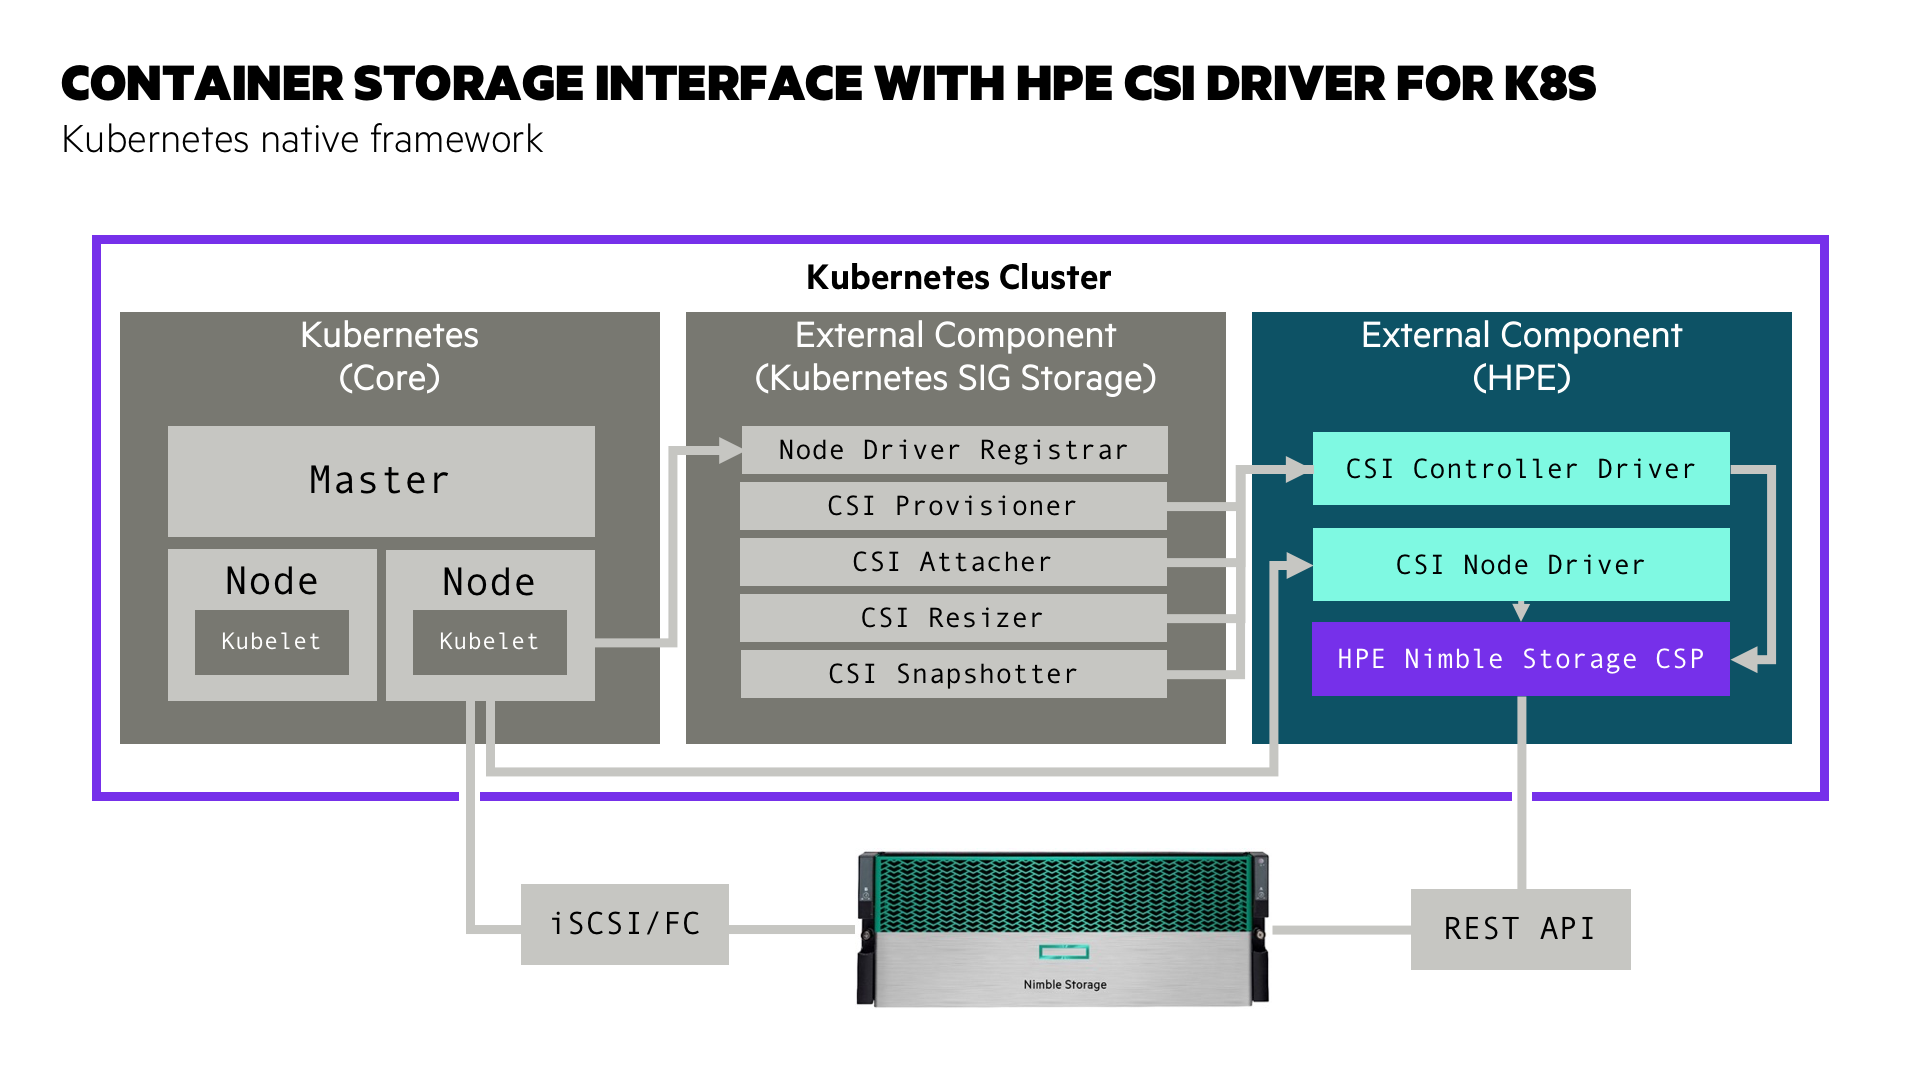 HPE CSI Driver for Kubernetes architecture